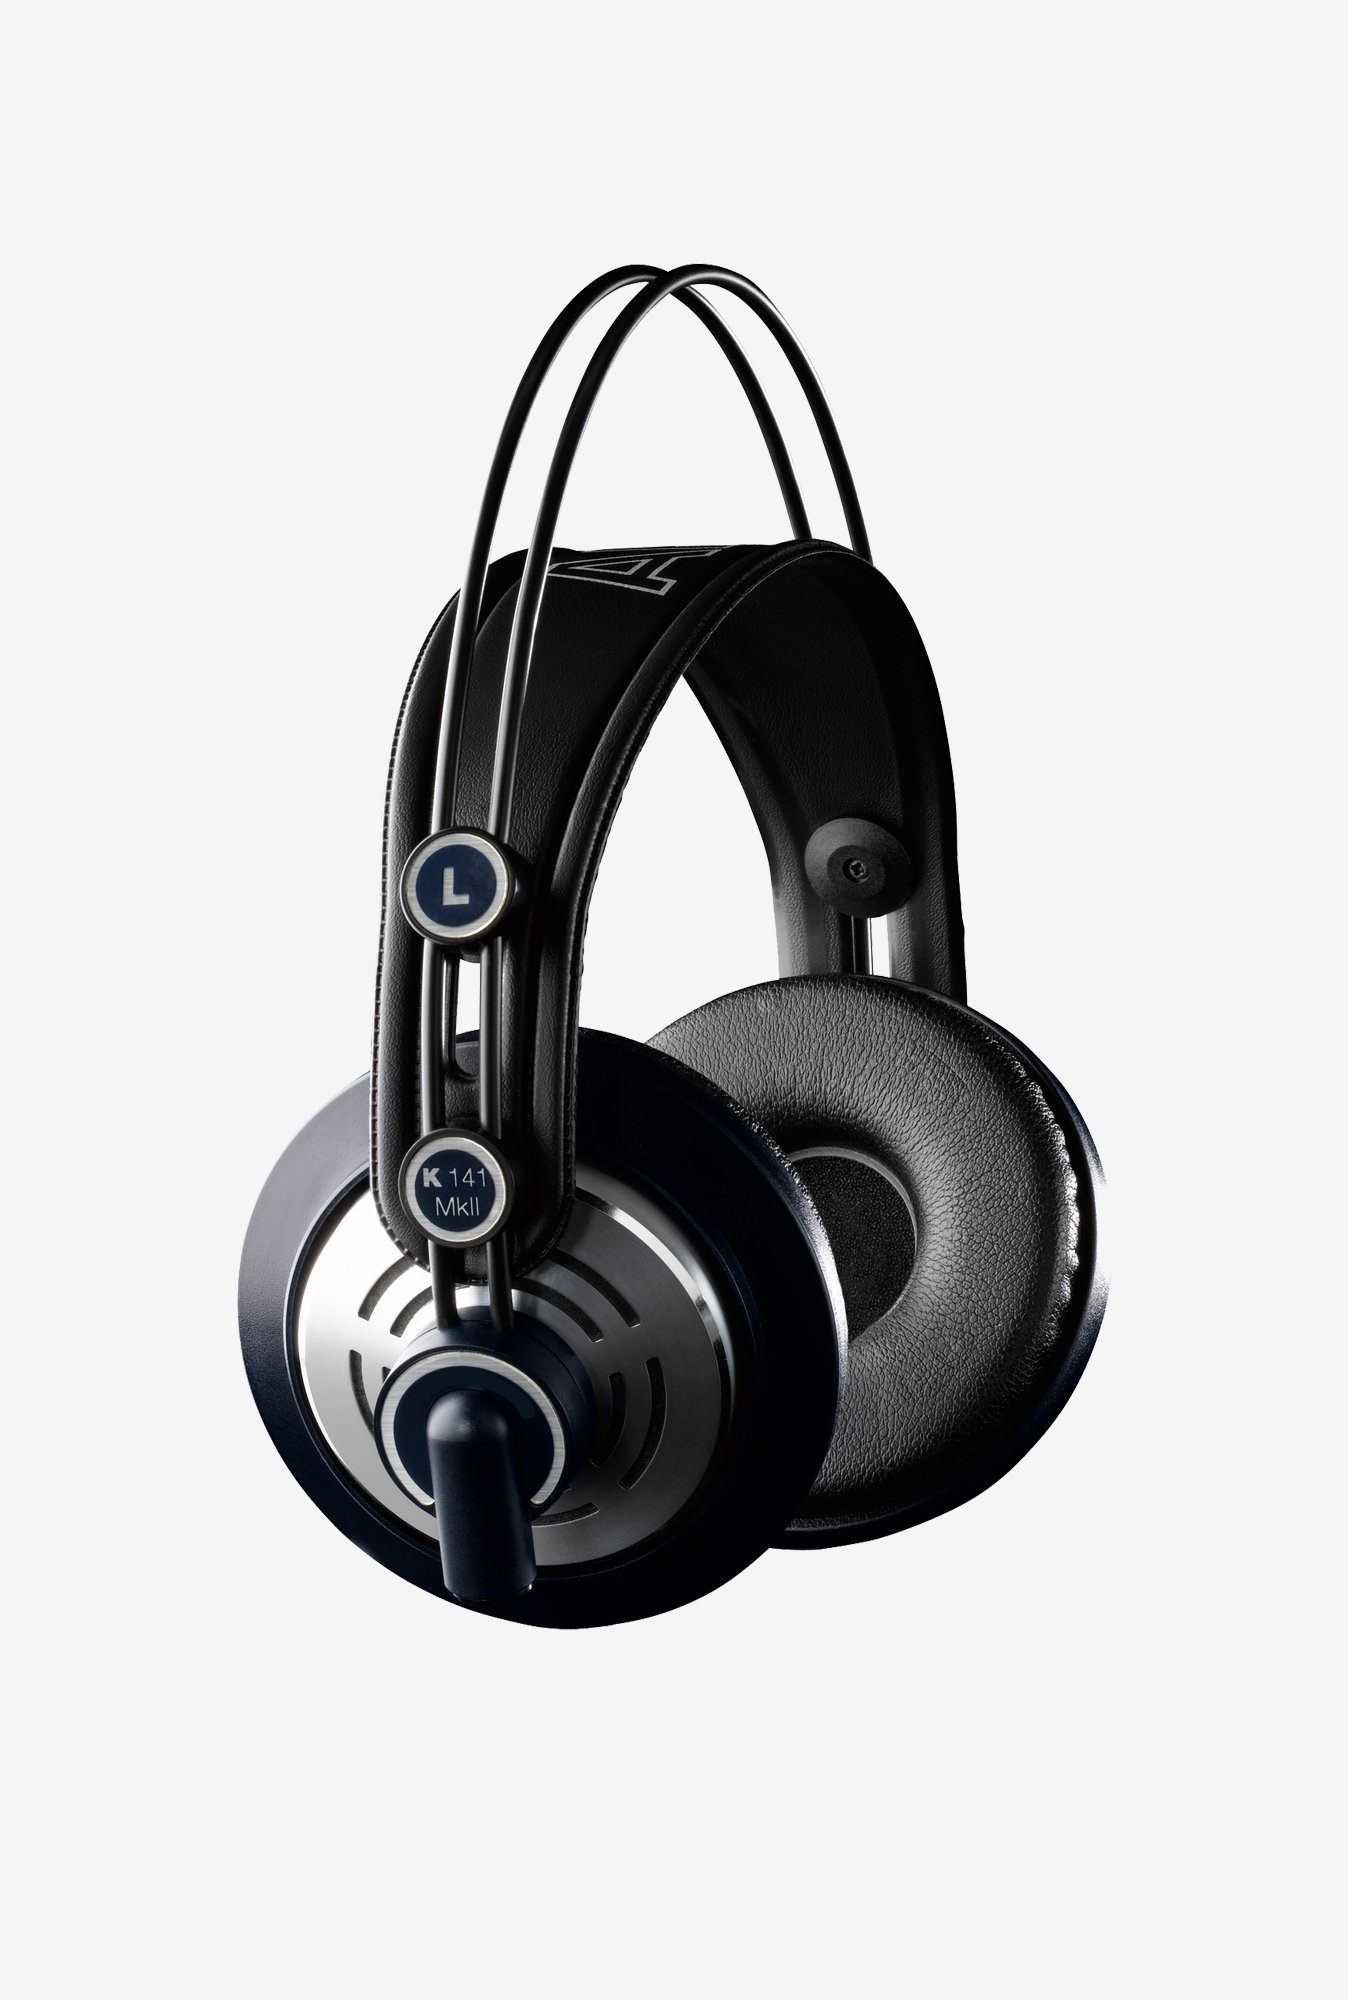 AKG K K141 MKII On The Ear Headphone Black & Silver